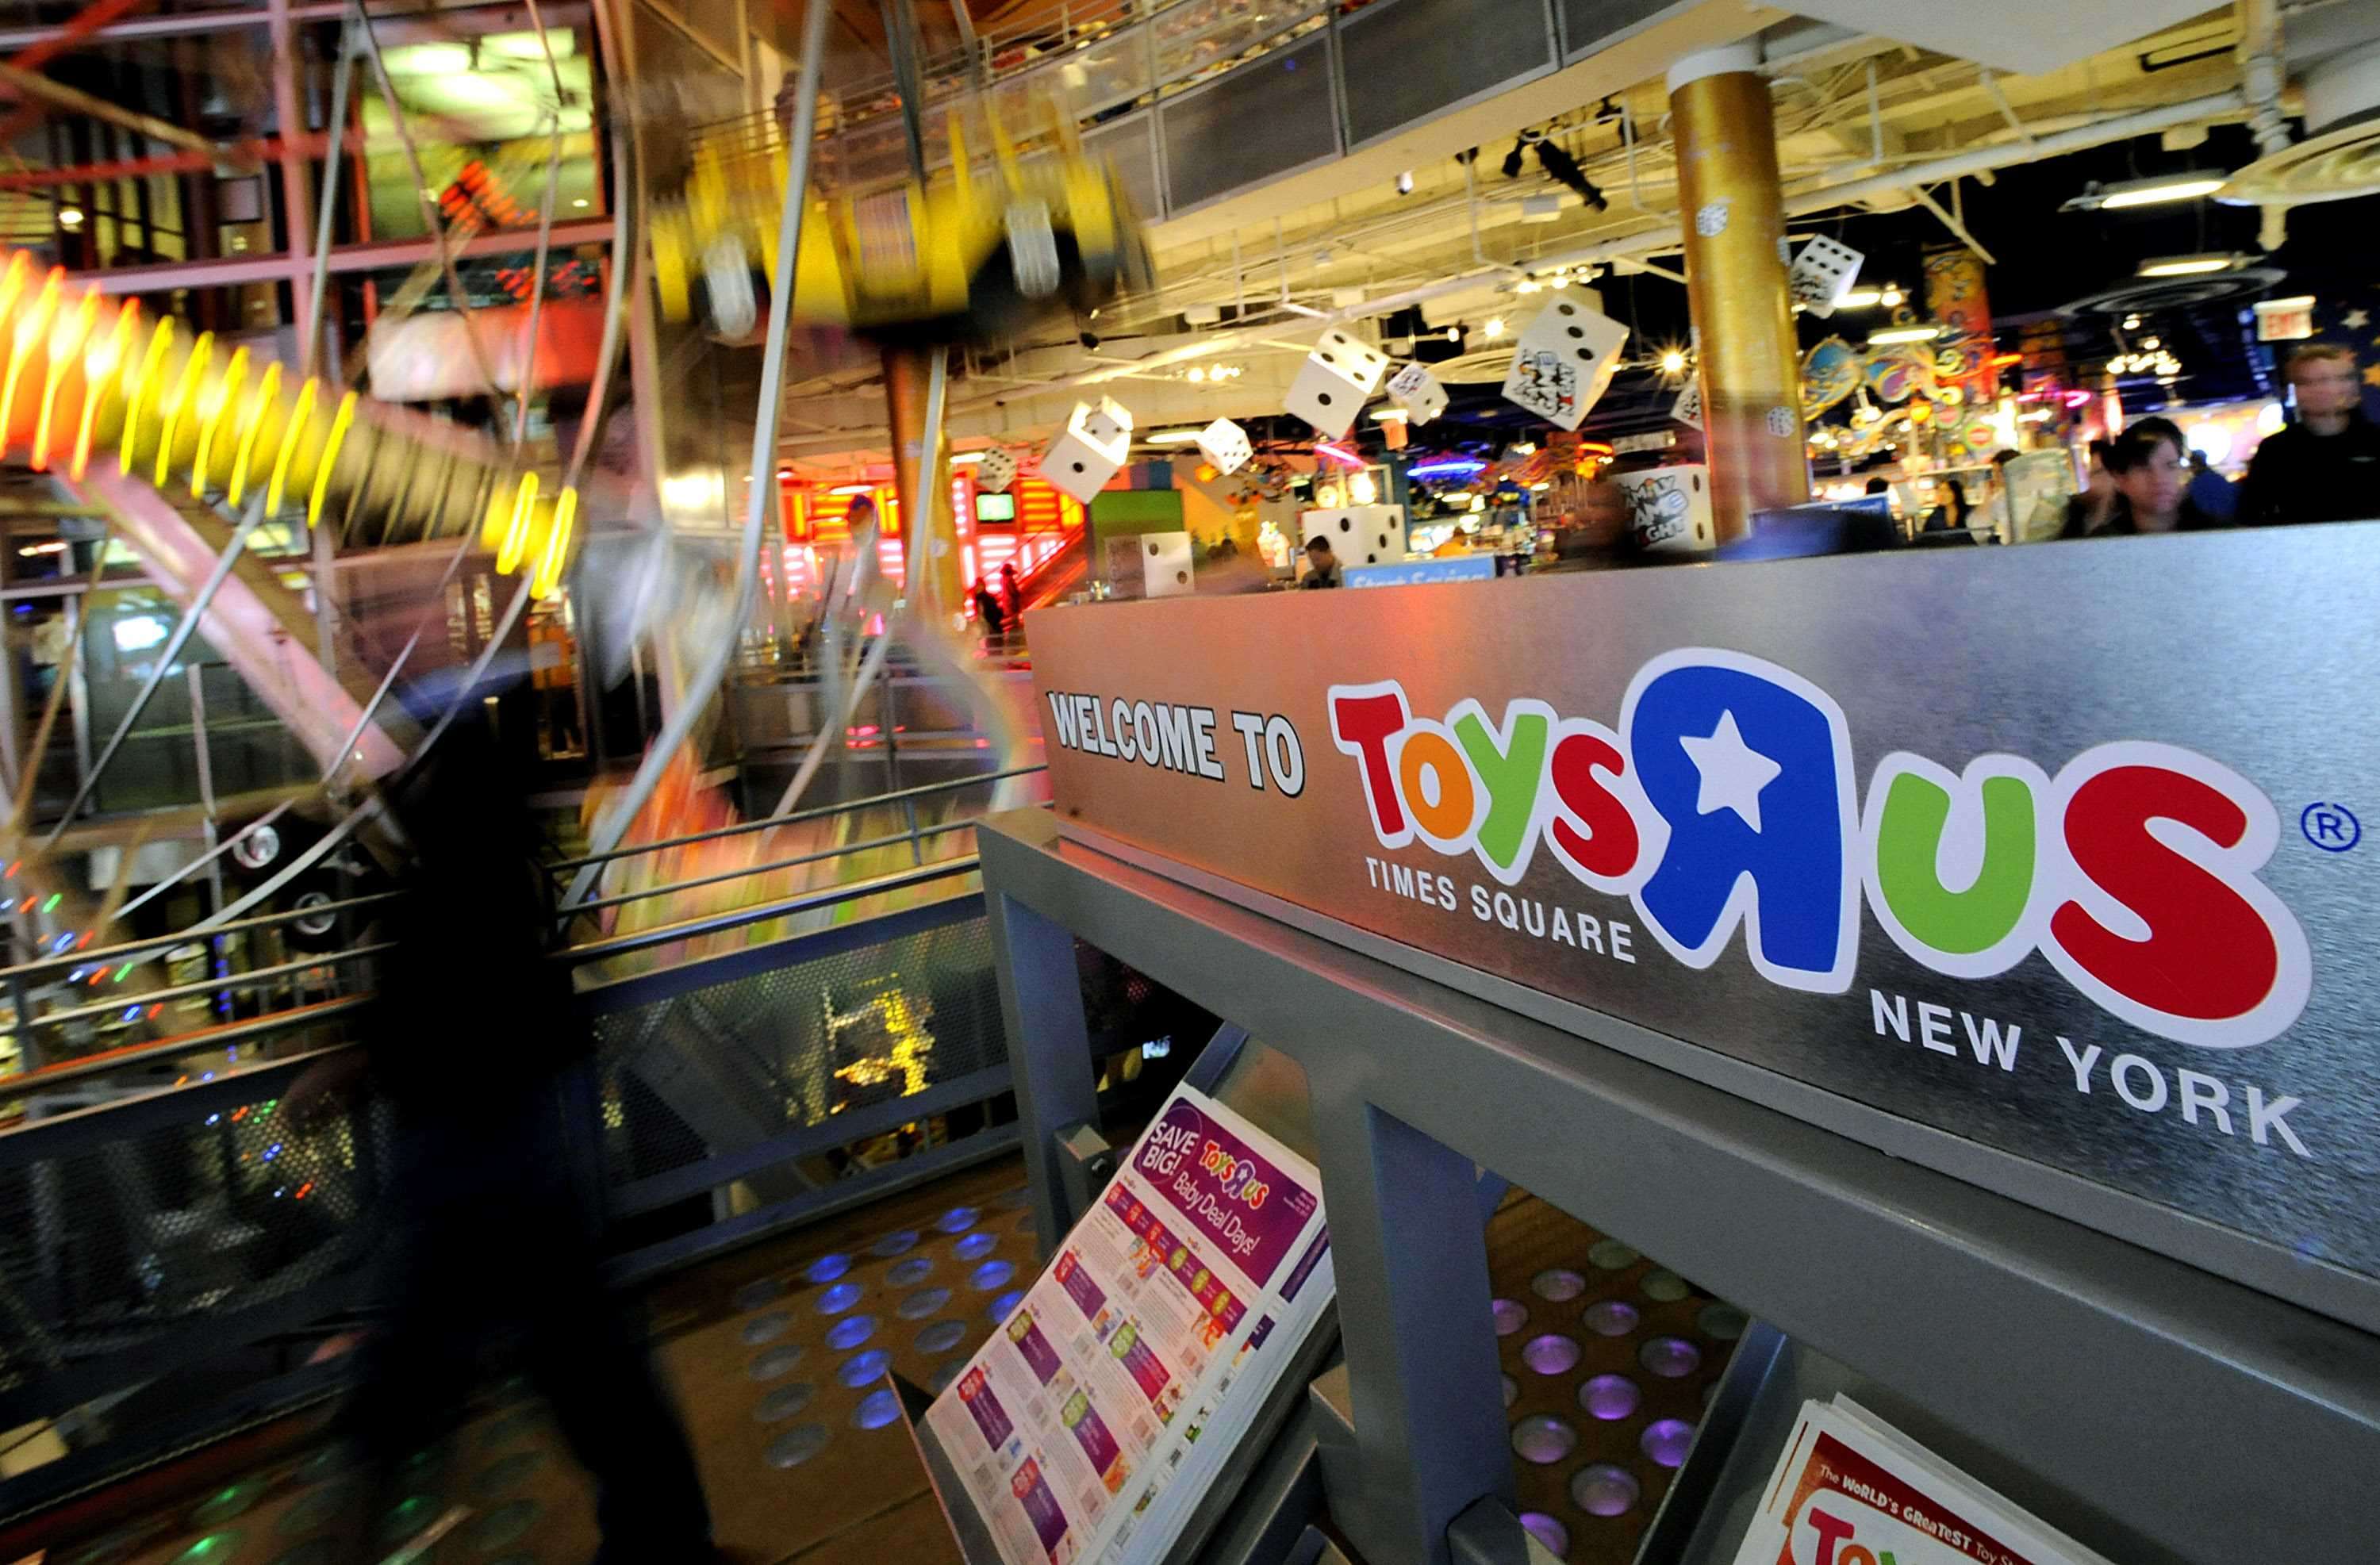 Toys R Us settles charges of discrimination against deaf applicant